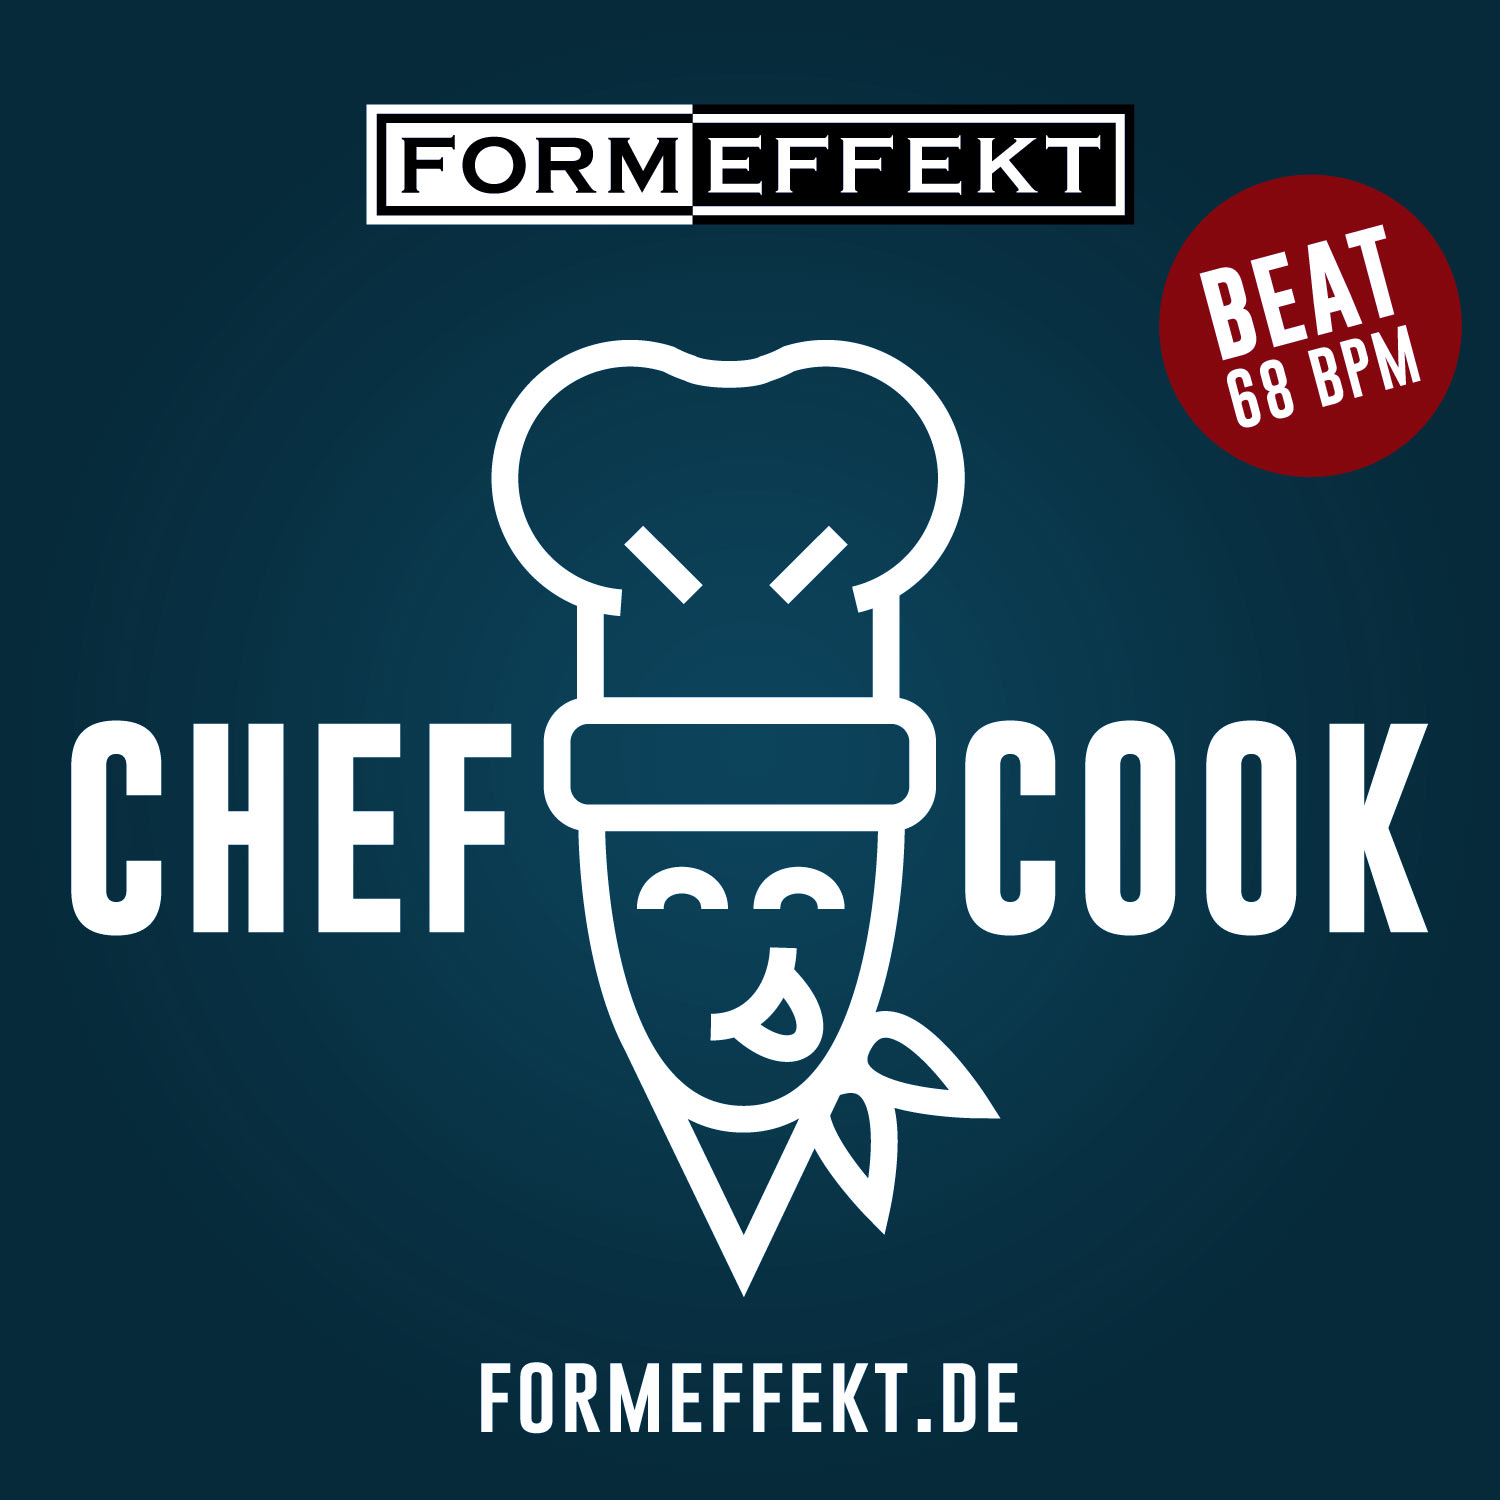 Chefcook - Beatcover